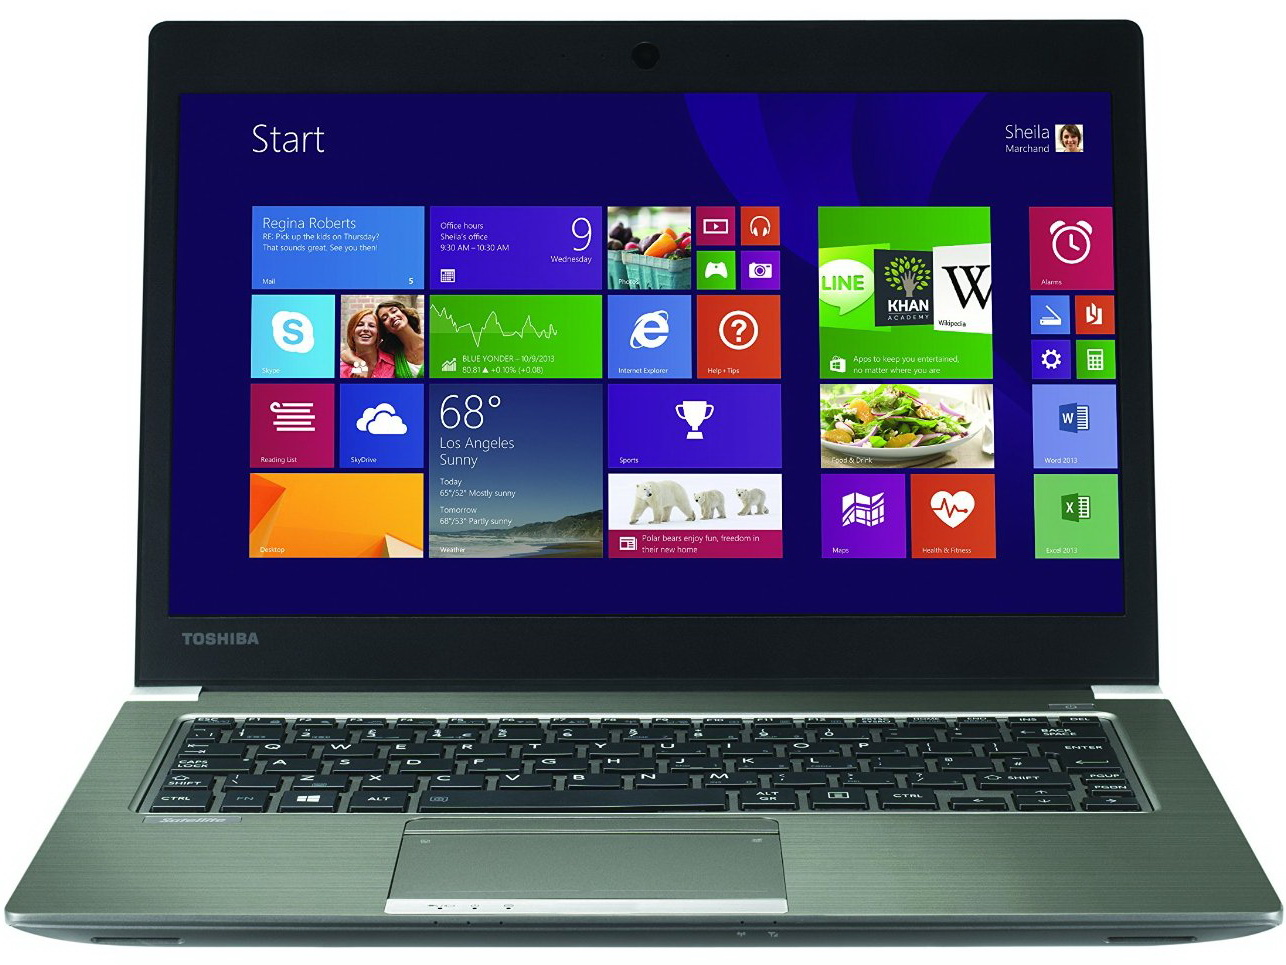 Toshiba Portege Z940-B Intel Wireless Display Drivers Windows 7